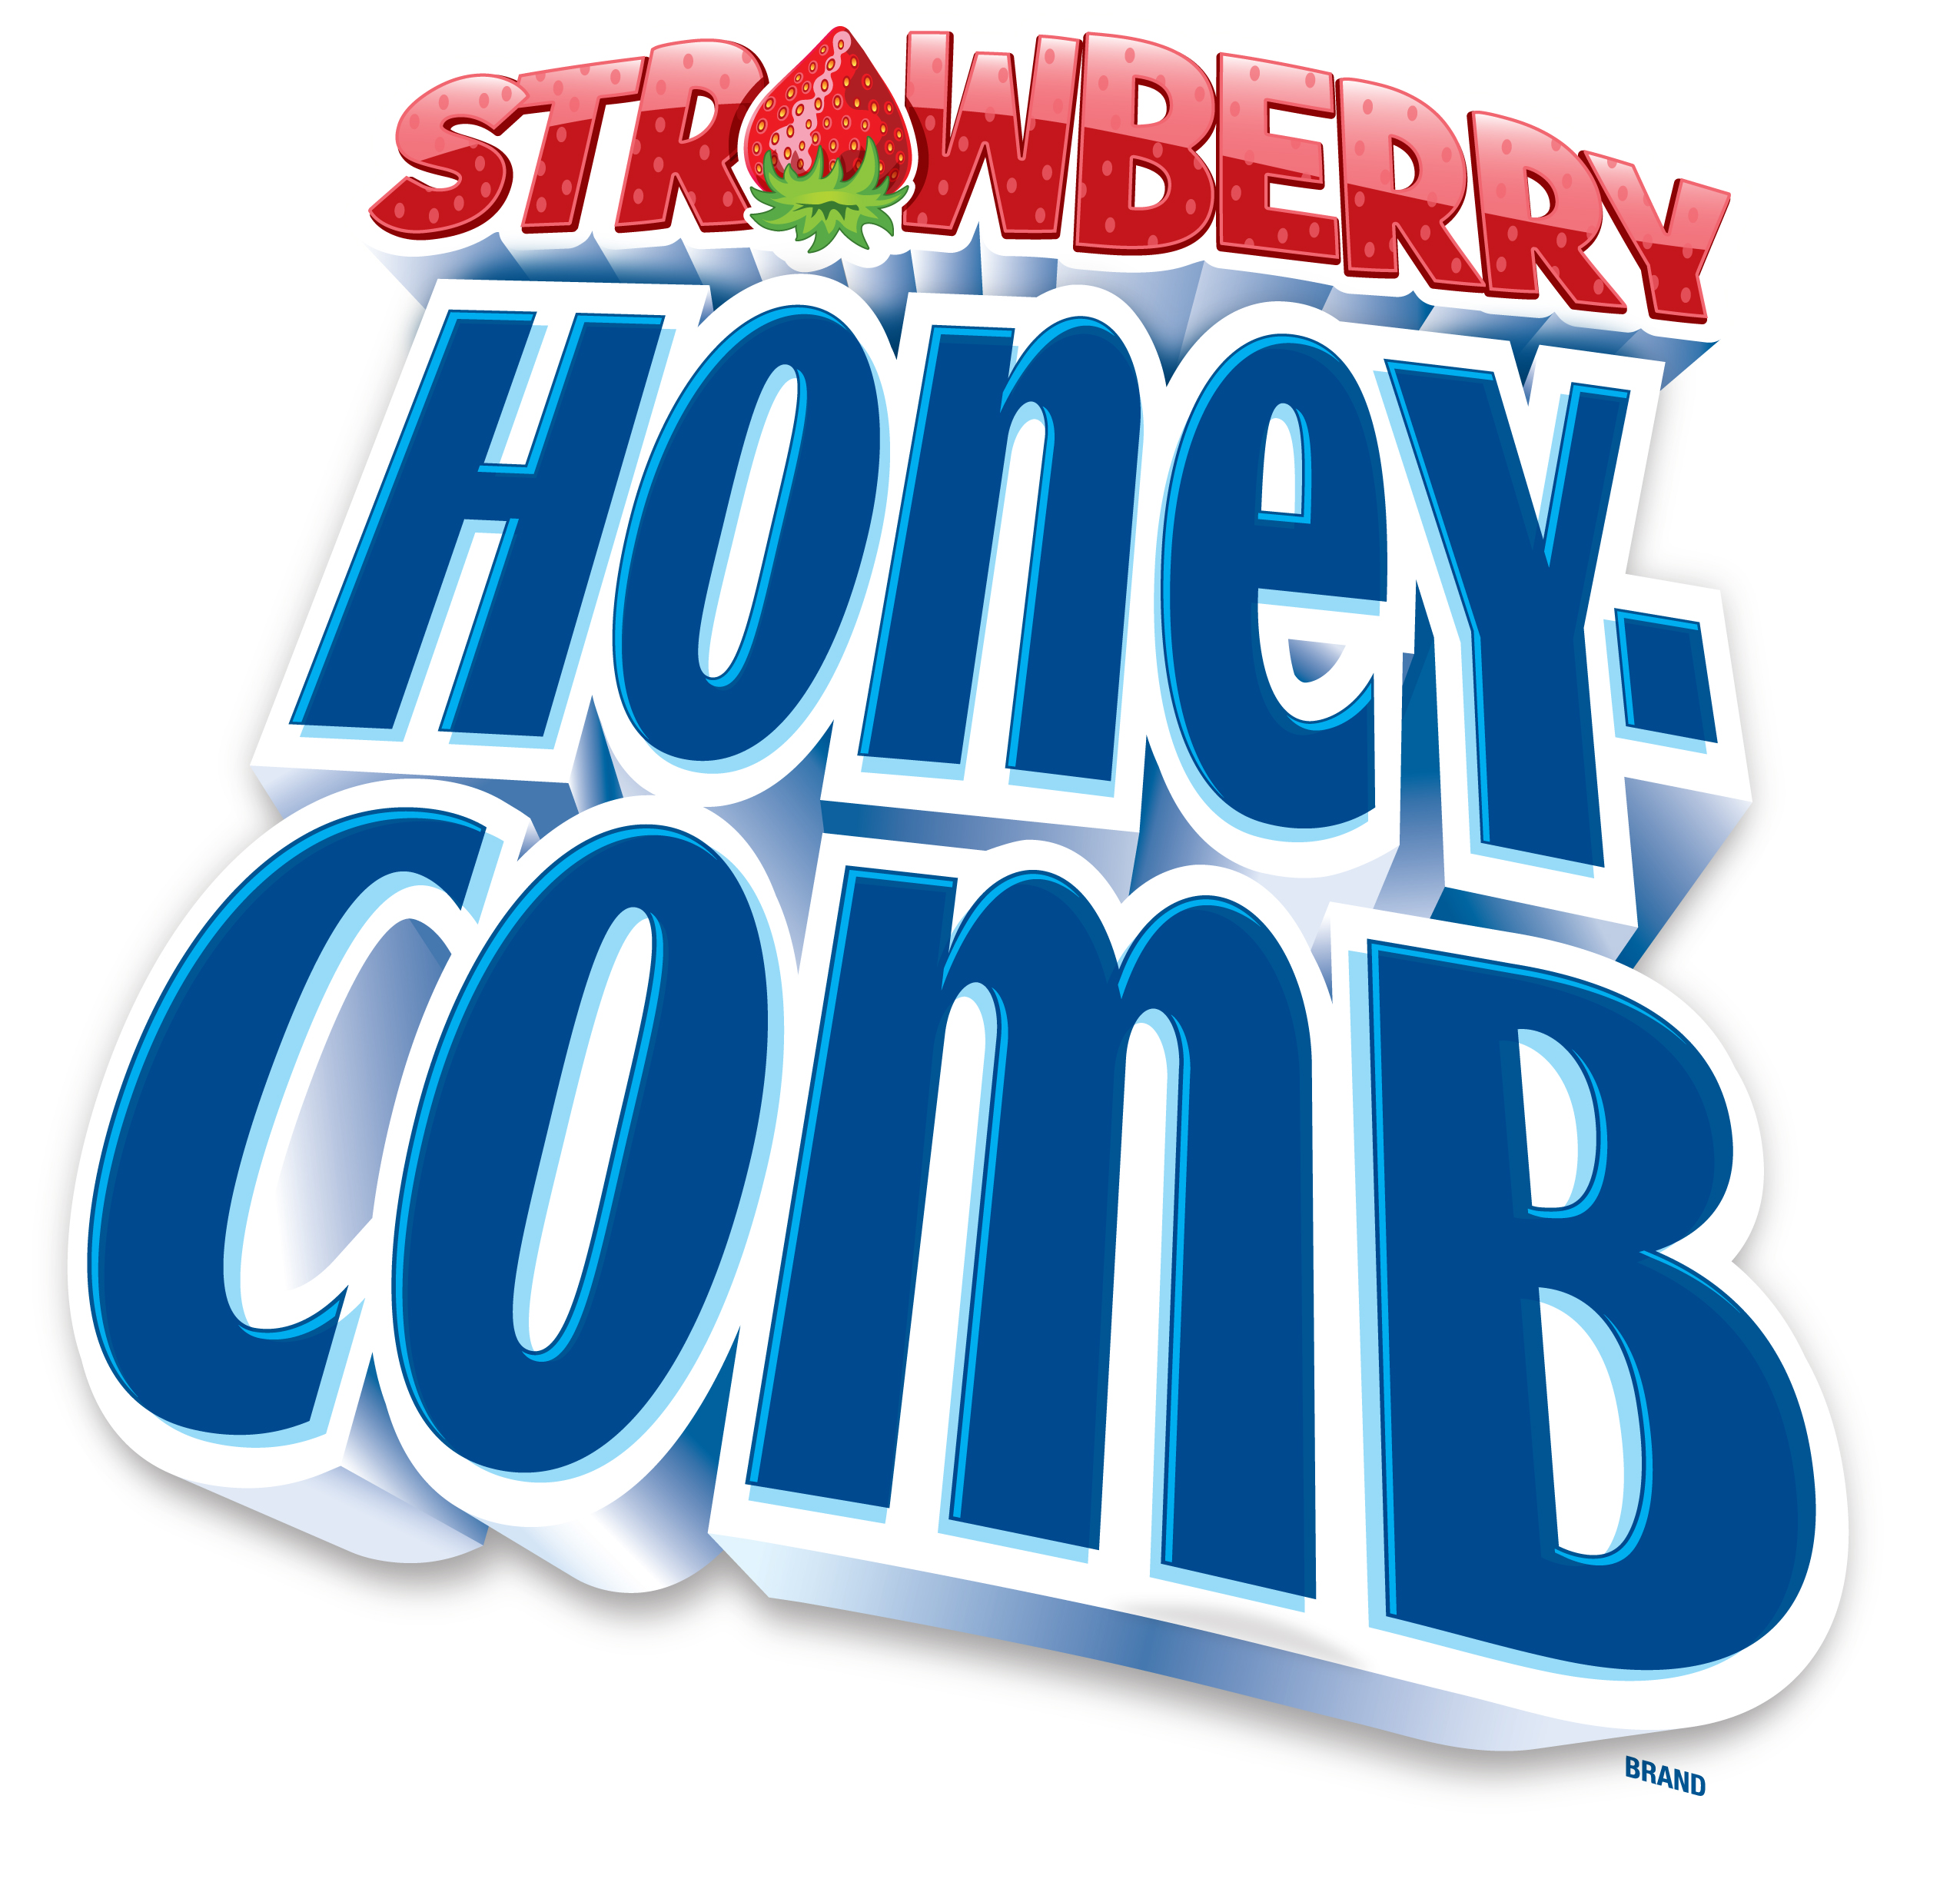 Post Honeycomb® Reintroduces Strawberry Honeycomb® Cereal